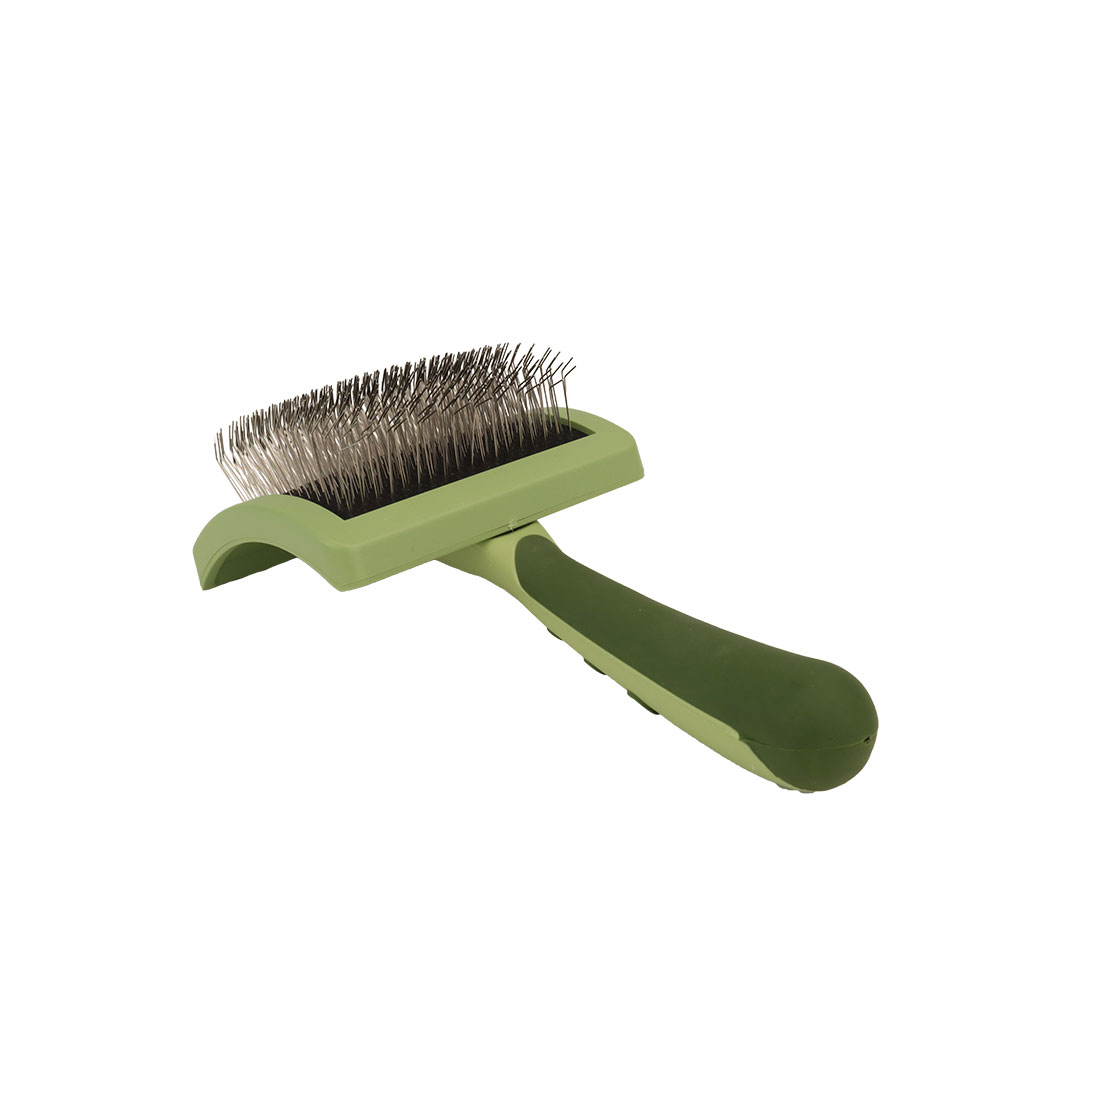 Safari® Curved Firm Slicker Brush with Coated Tips for Long Hair